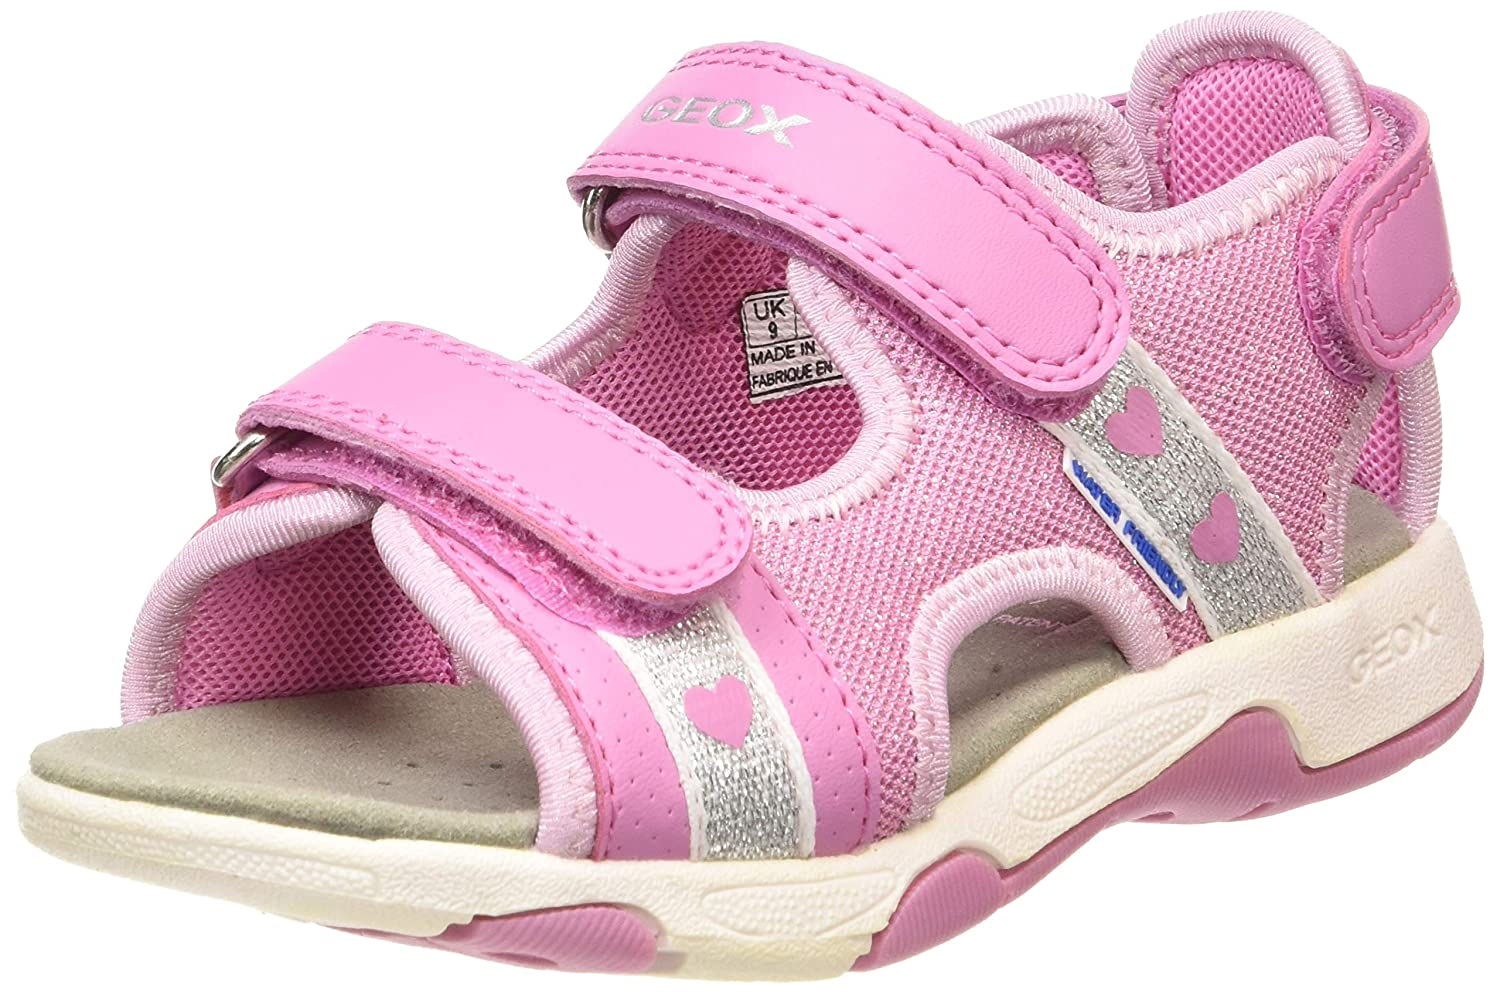 SandalsAmazon B Sport caShoesamp; Girl Handbags Geox Multy Kids vOnwmN80